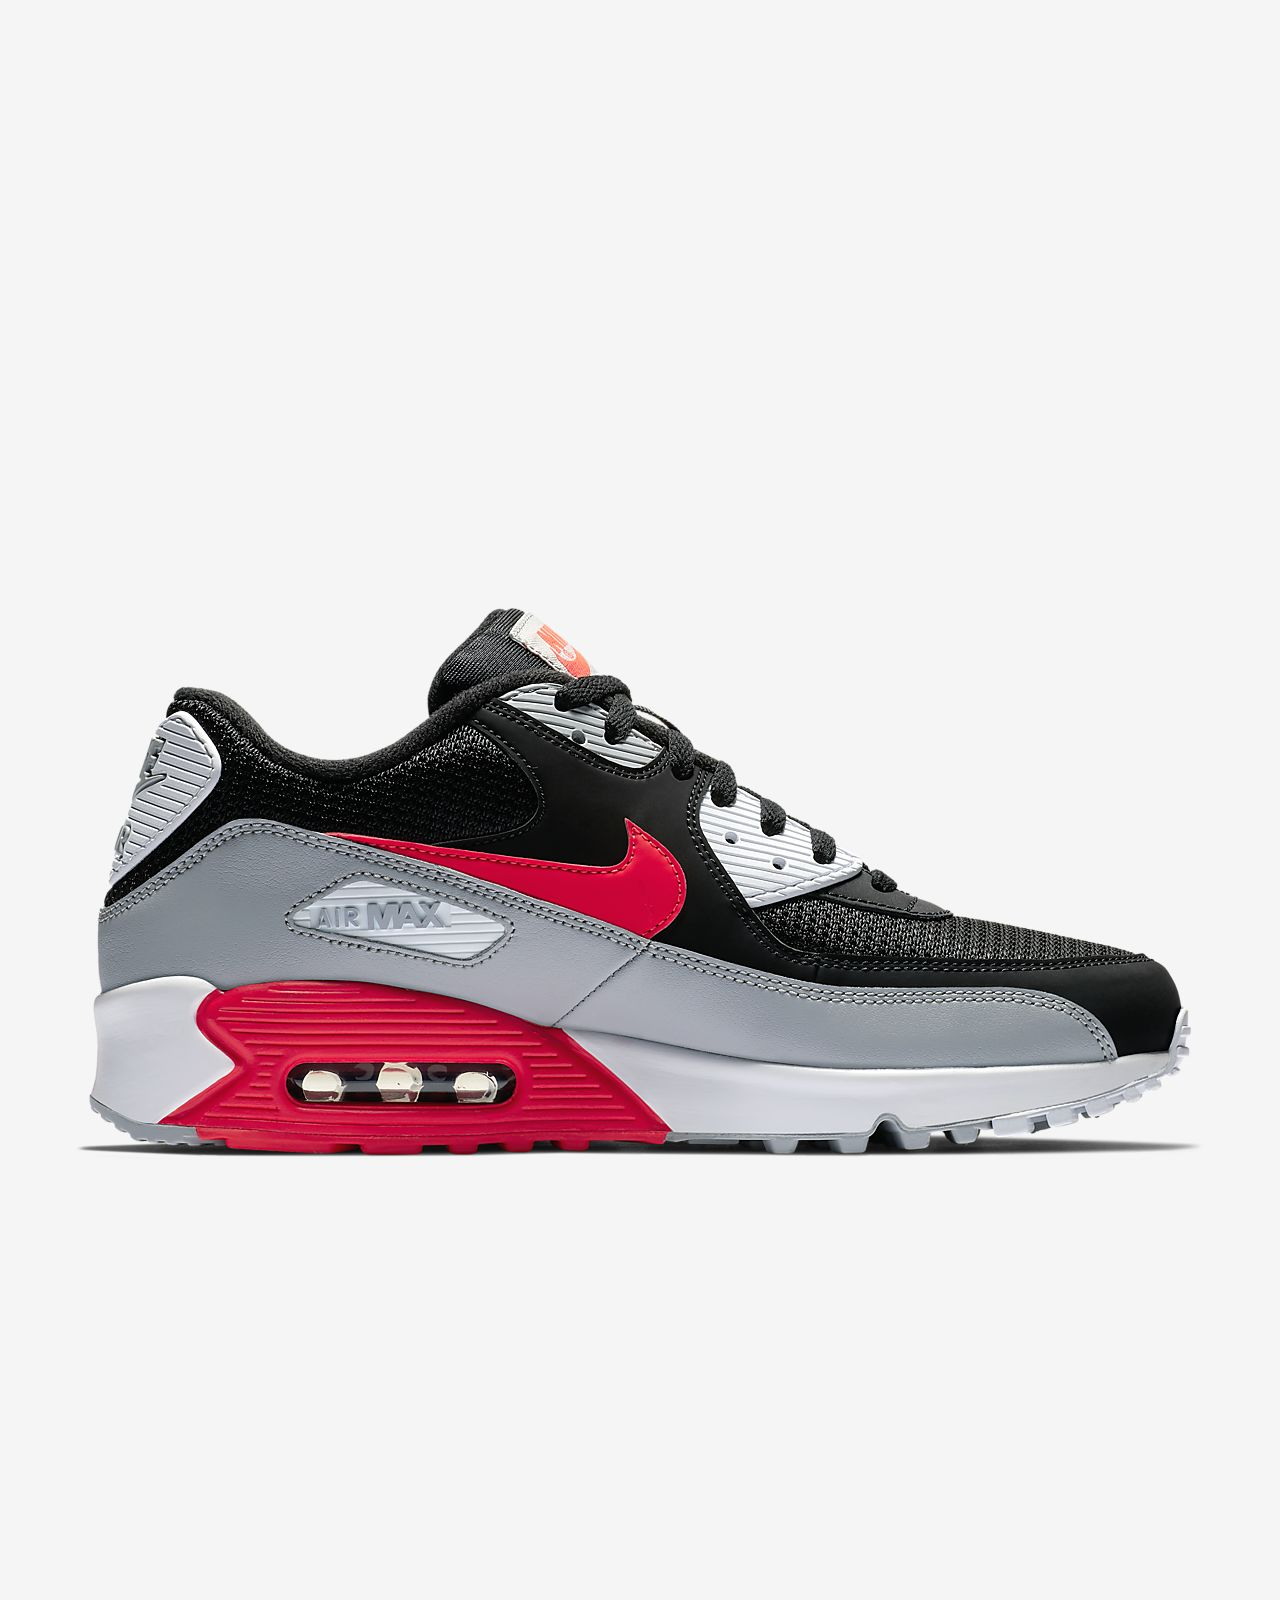 new products 4fbd1 7aa50 ... Nike Air Max 90 Essential Mens Shoe